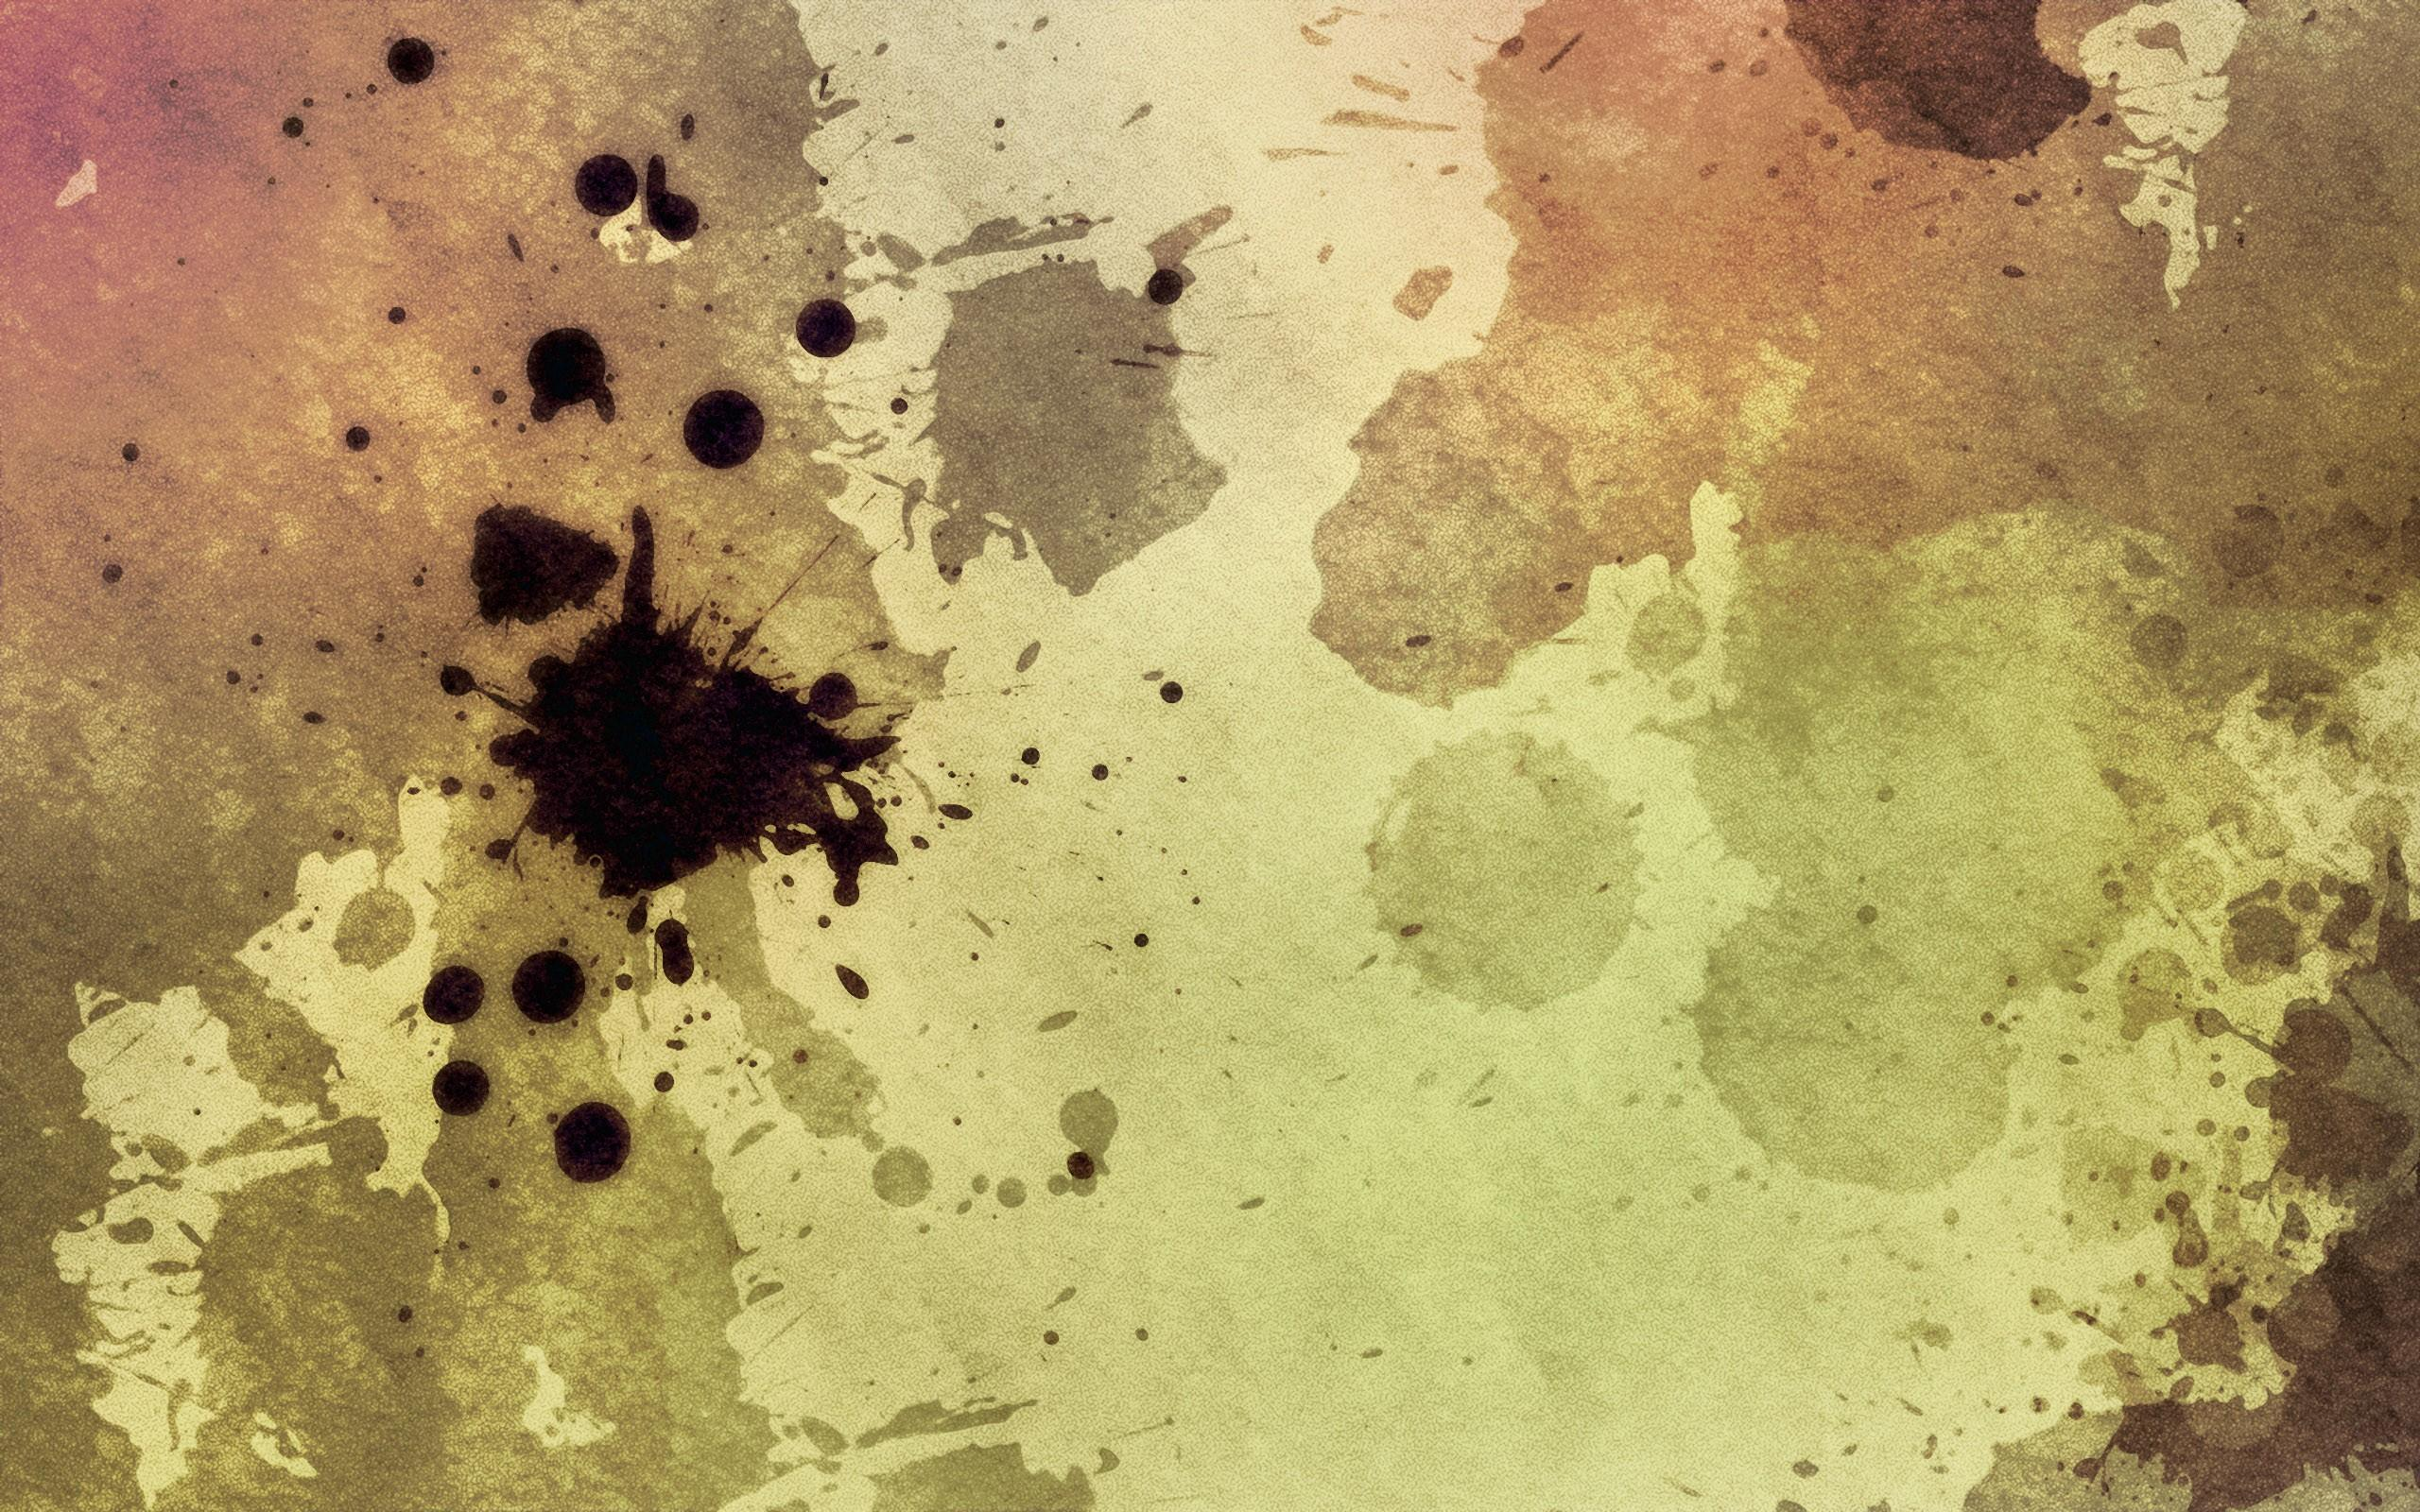 background surface stain - photo #19